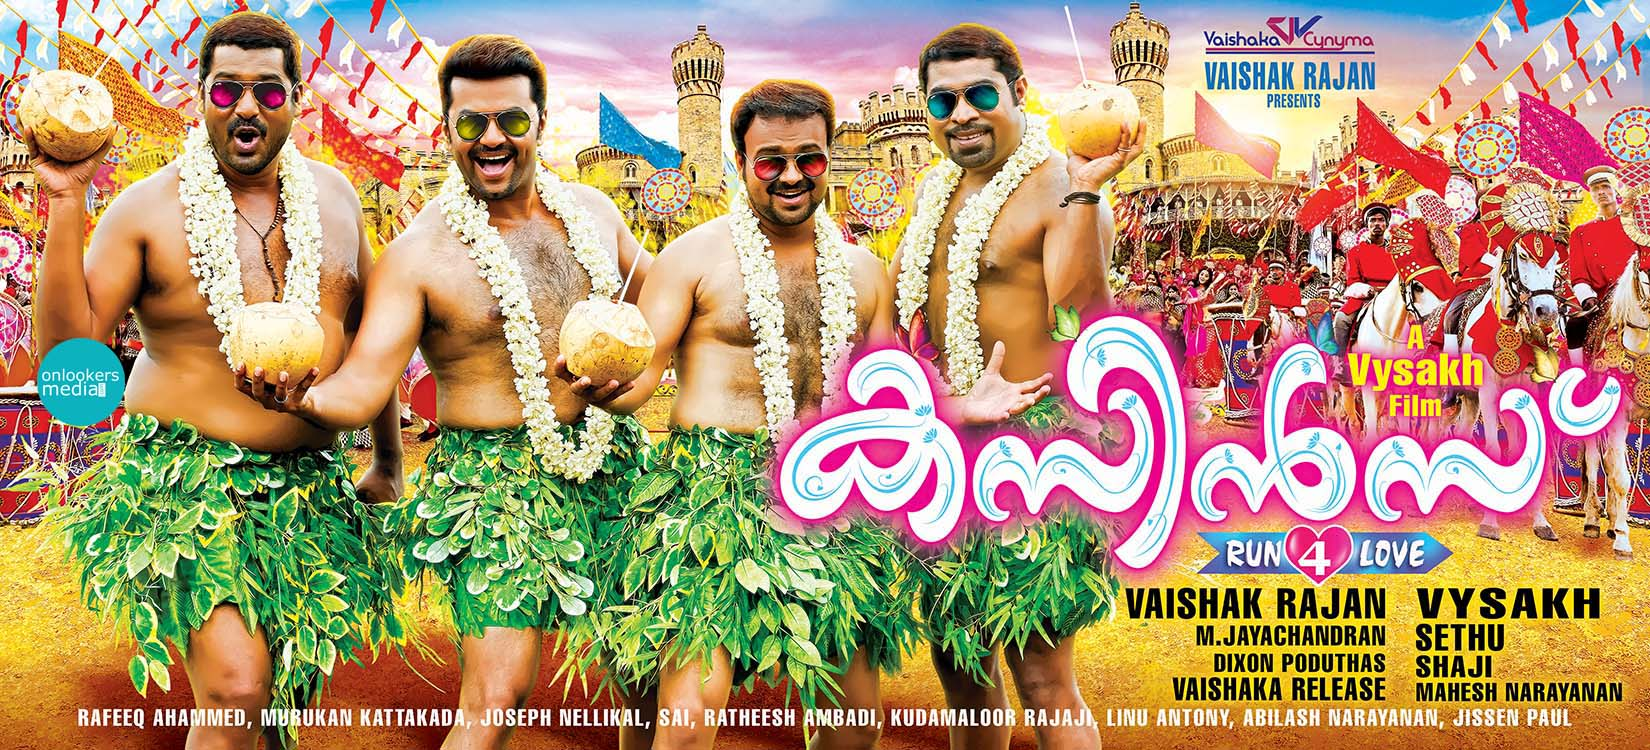 http://onlookersmedia.in/wp-content/uploads/2014/12/Cousins-Posters-Stills-Images-Review-Report-Collection-Kunchacko-Boban-Indrajith-Nisha-Agarwal-Vedhika-Miya-Onlookers-Media-10.jpg